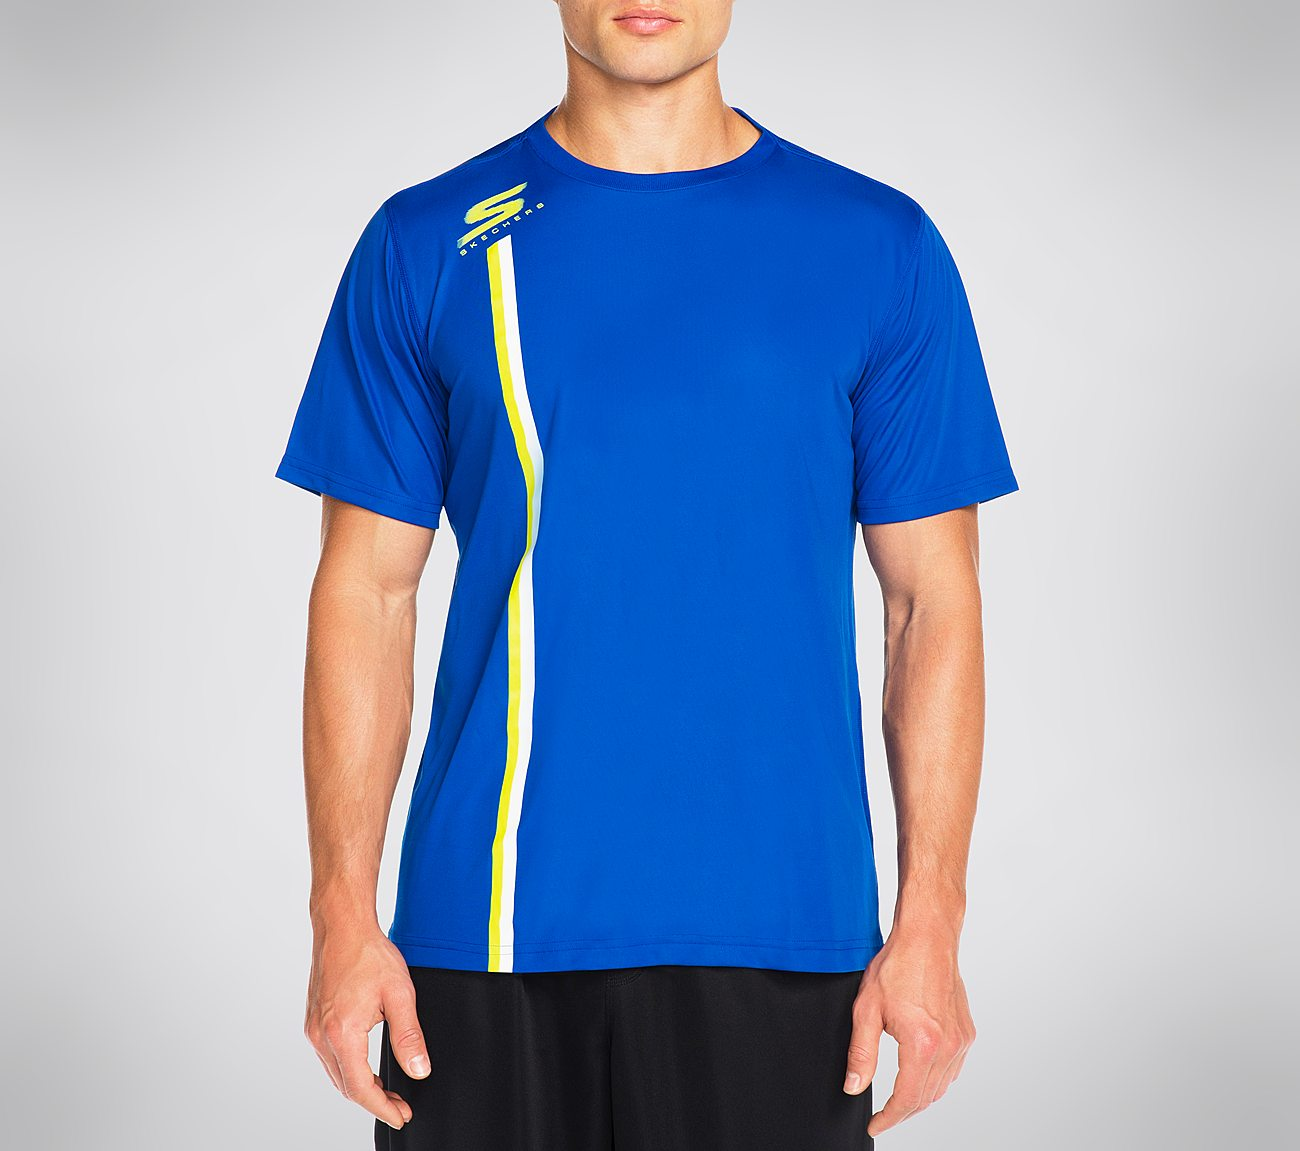 Buy SKECHERS Finish Line Tech Tee Shirt